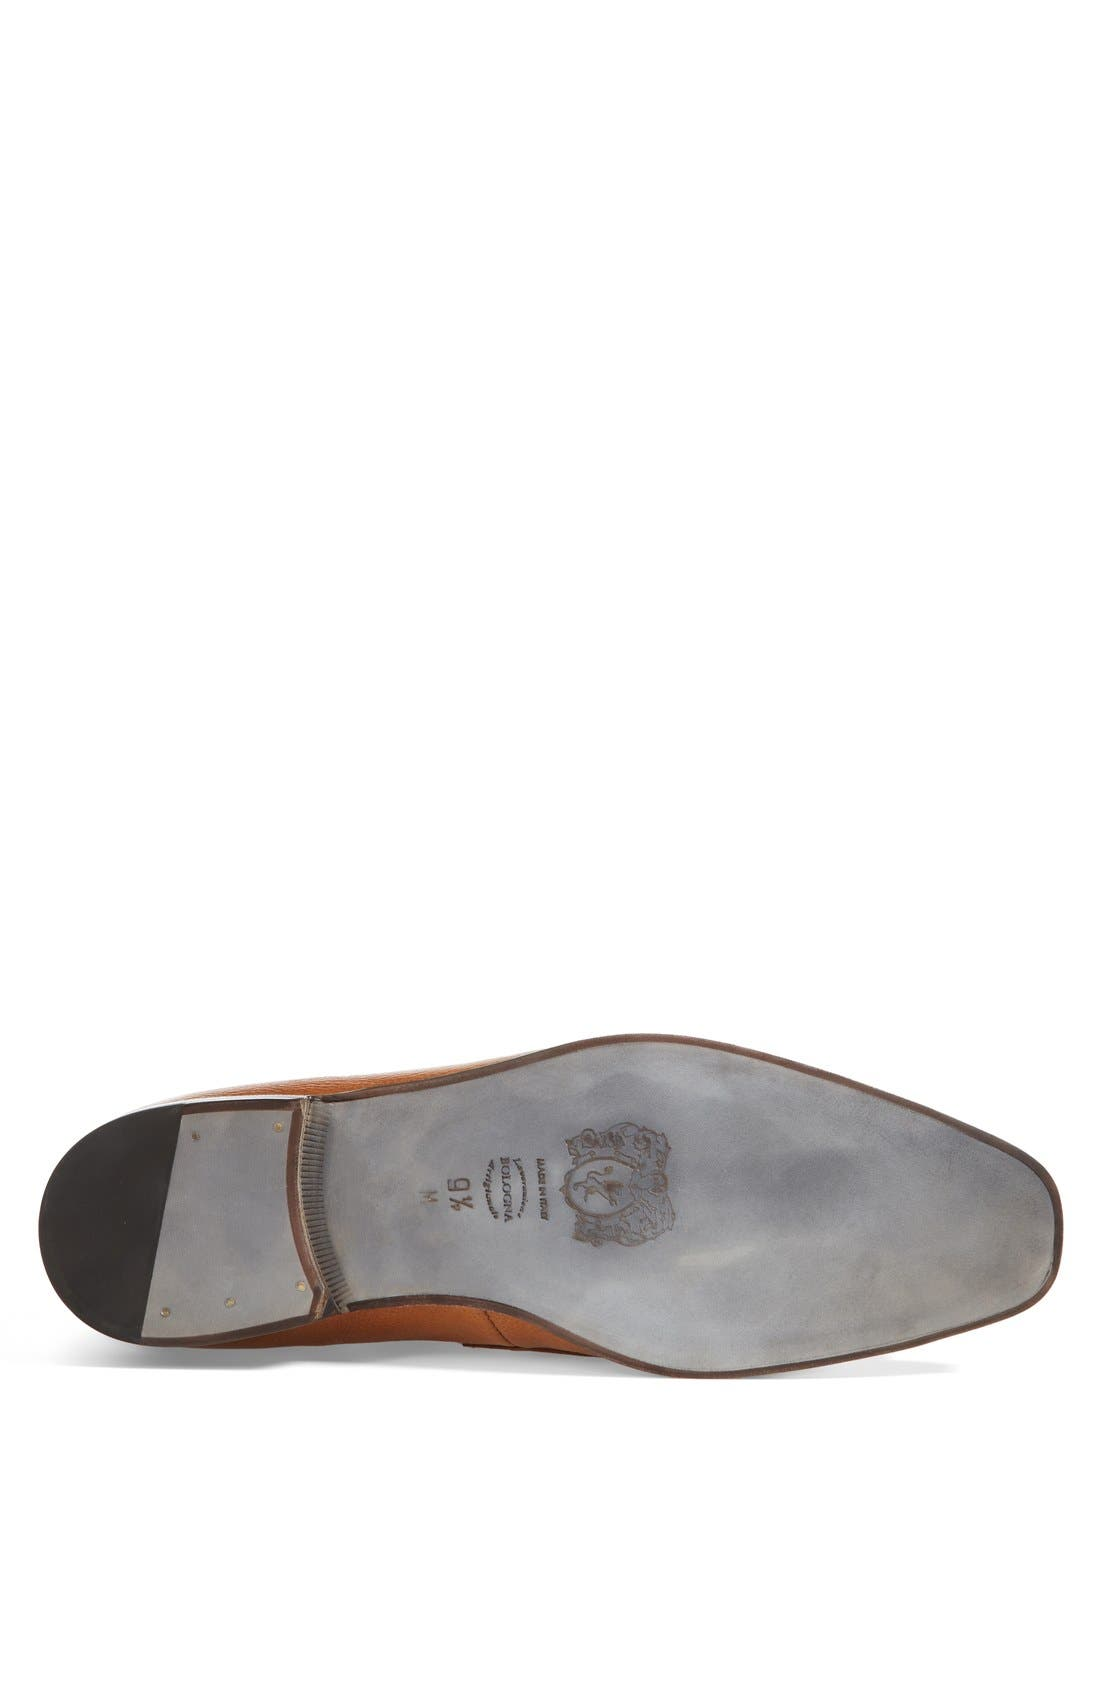 'Mamante II' Pebbled Leather Loafer,                             Alternate thumbnail 3, color,                             233